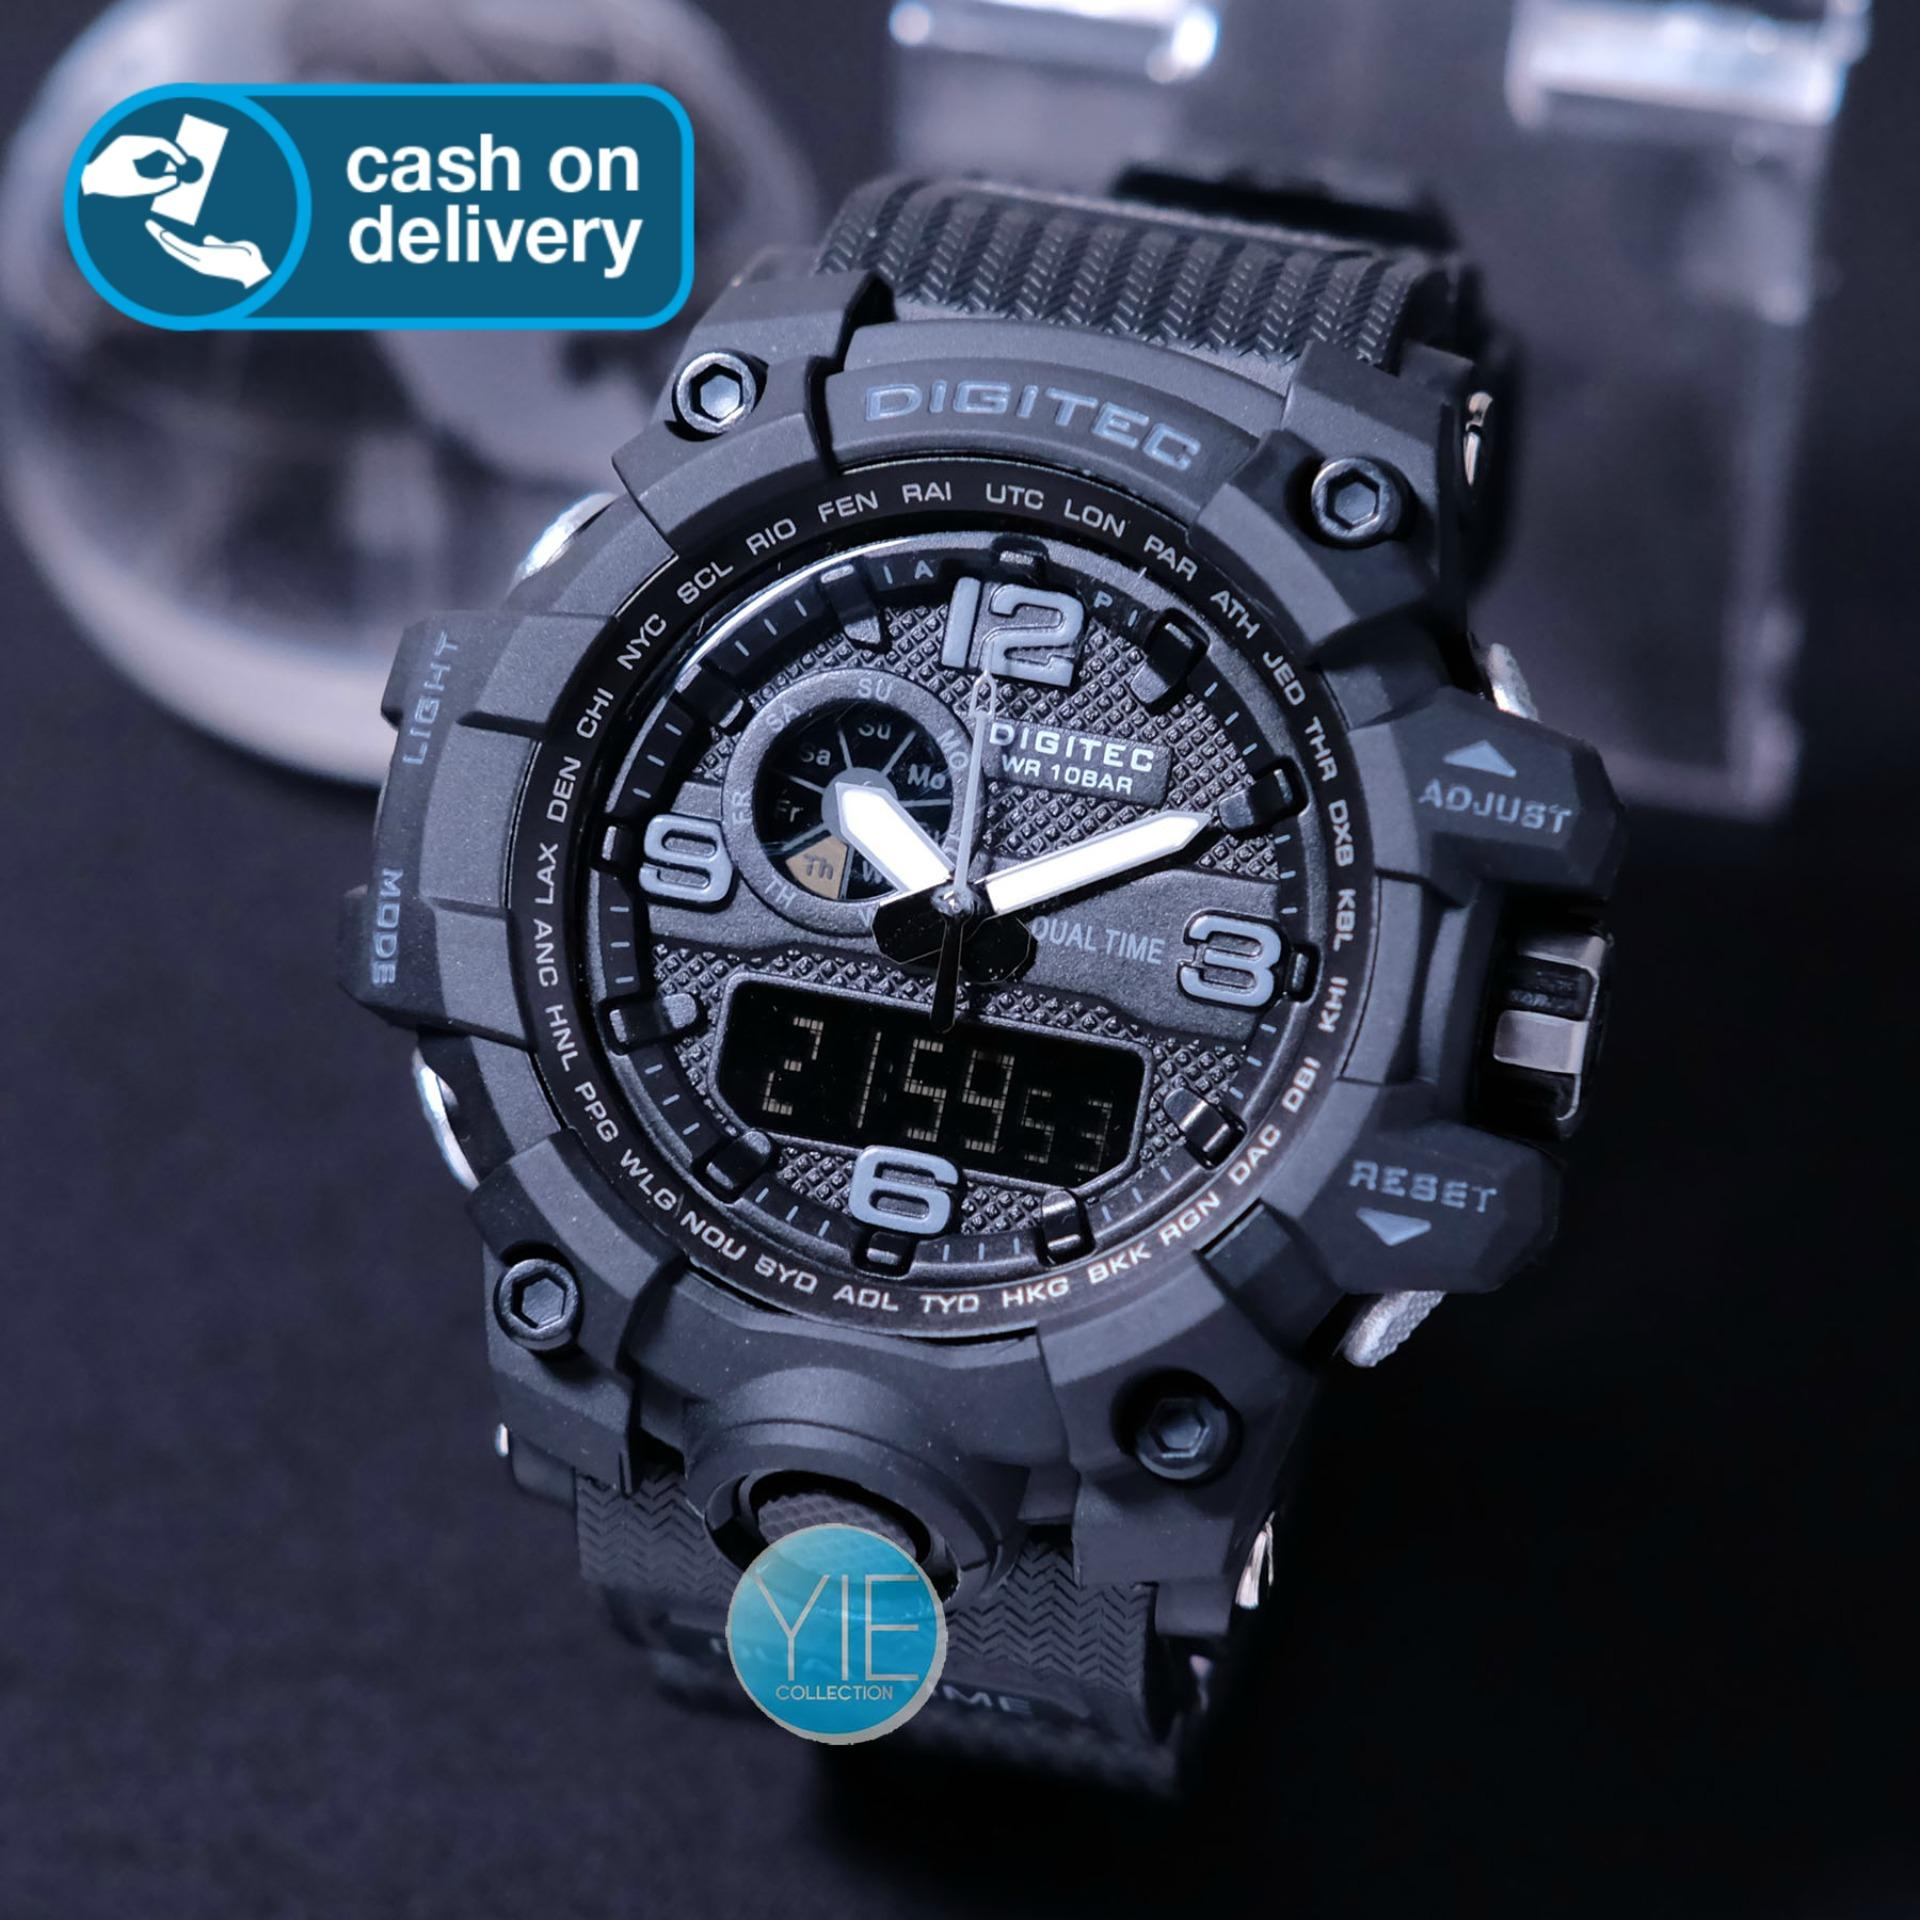 Digitec Jam Tangan Sport Pria DG 2093 T Dual Time Original Anti Air - Hitam